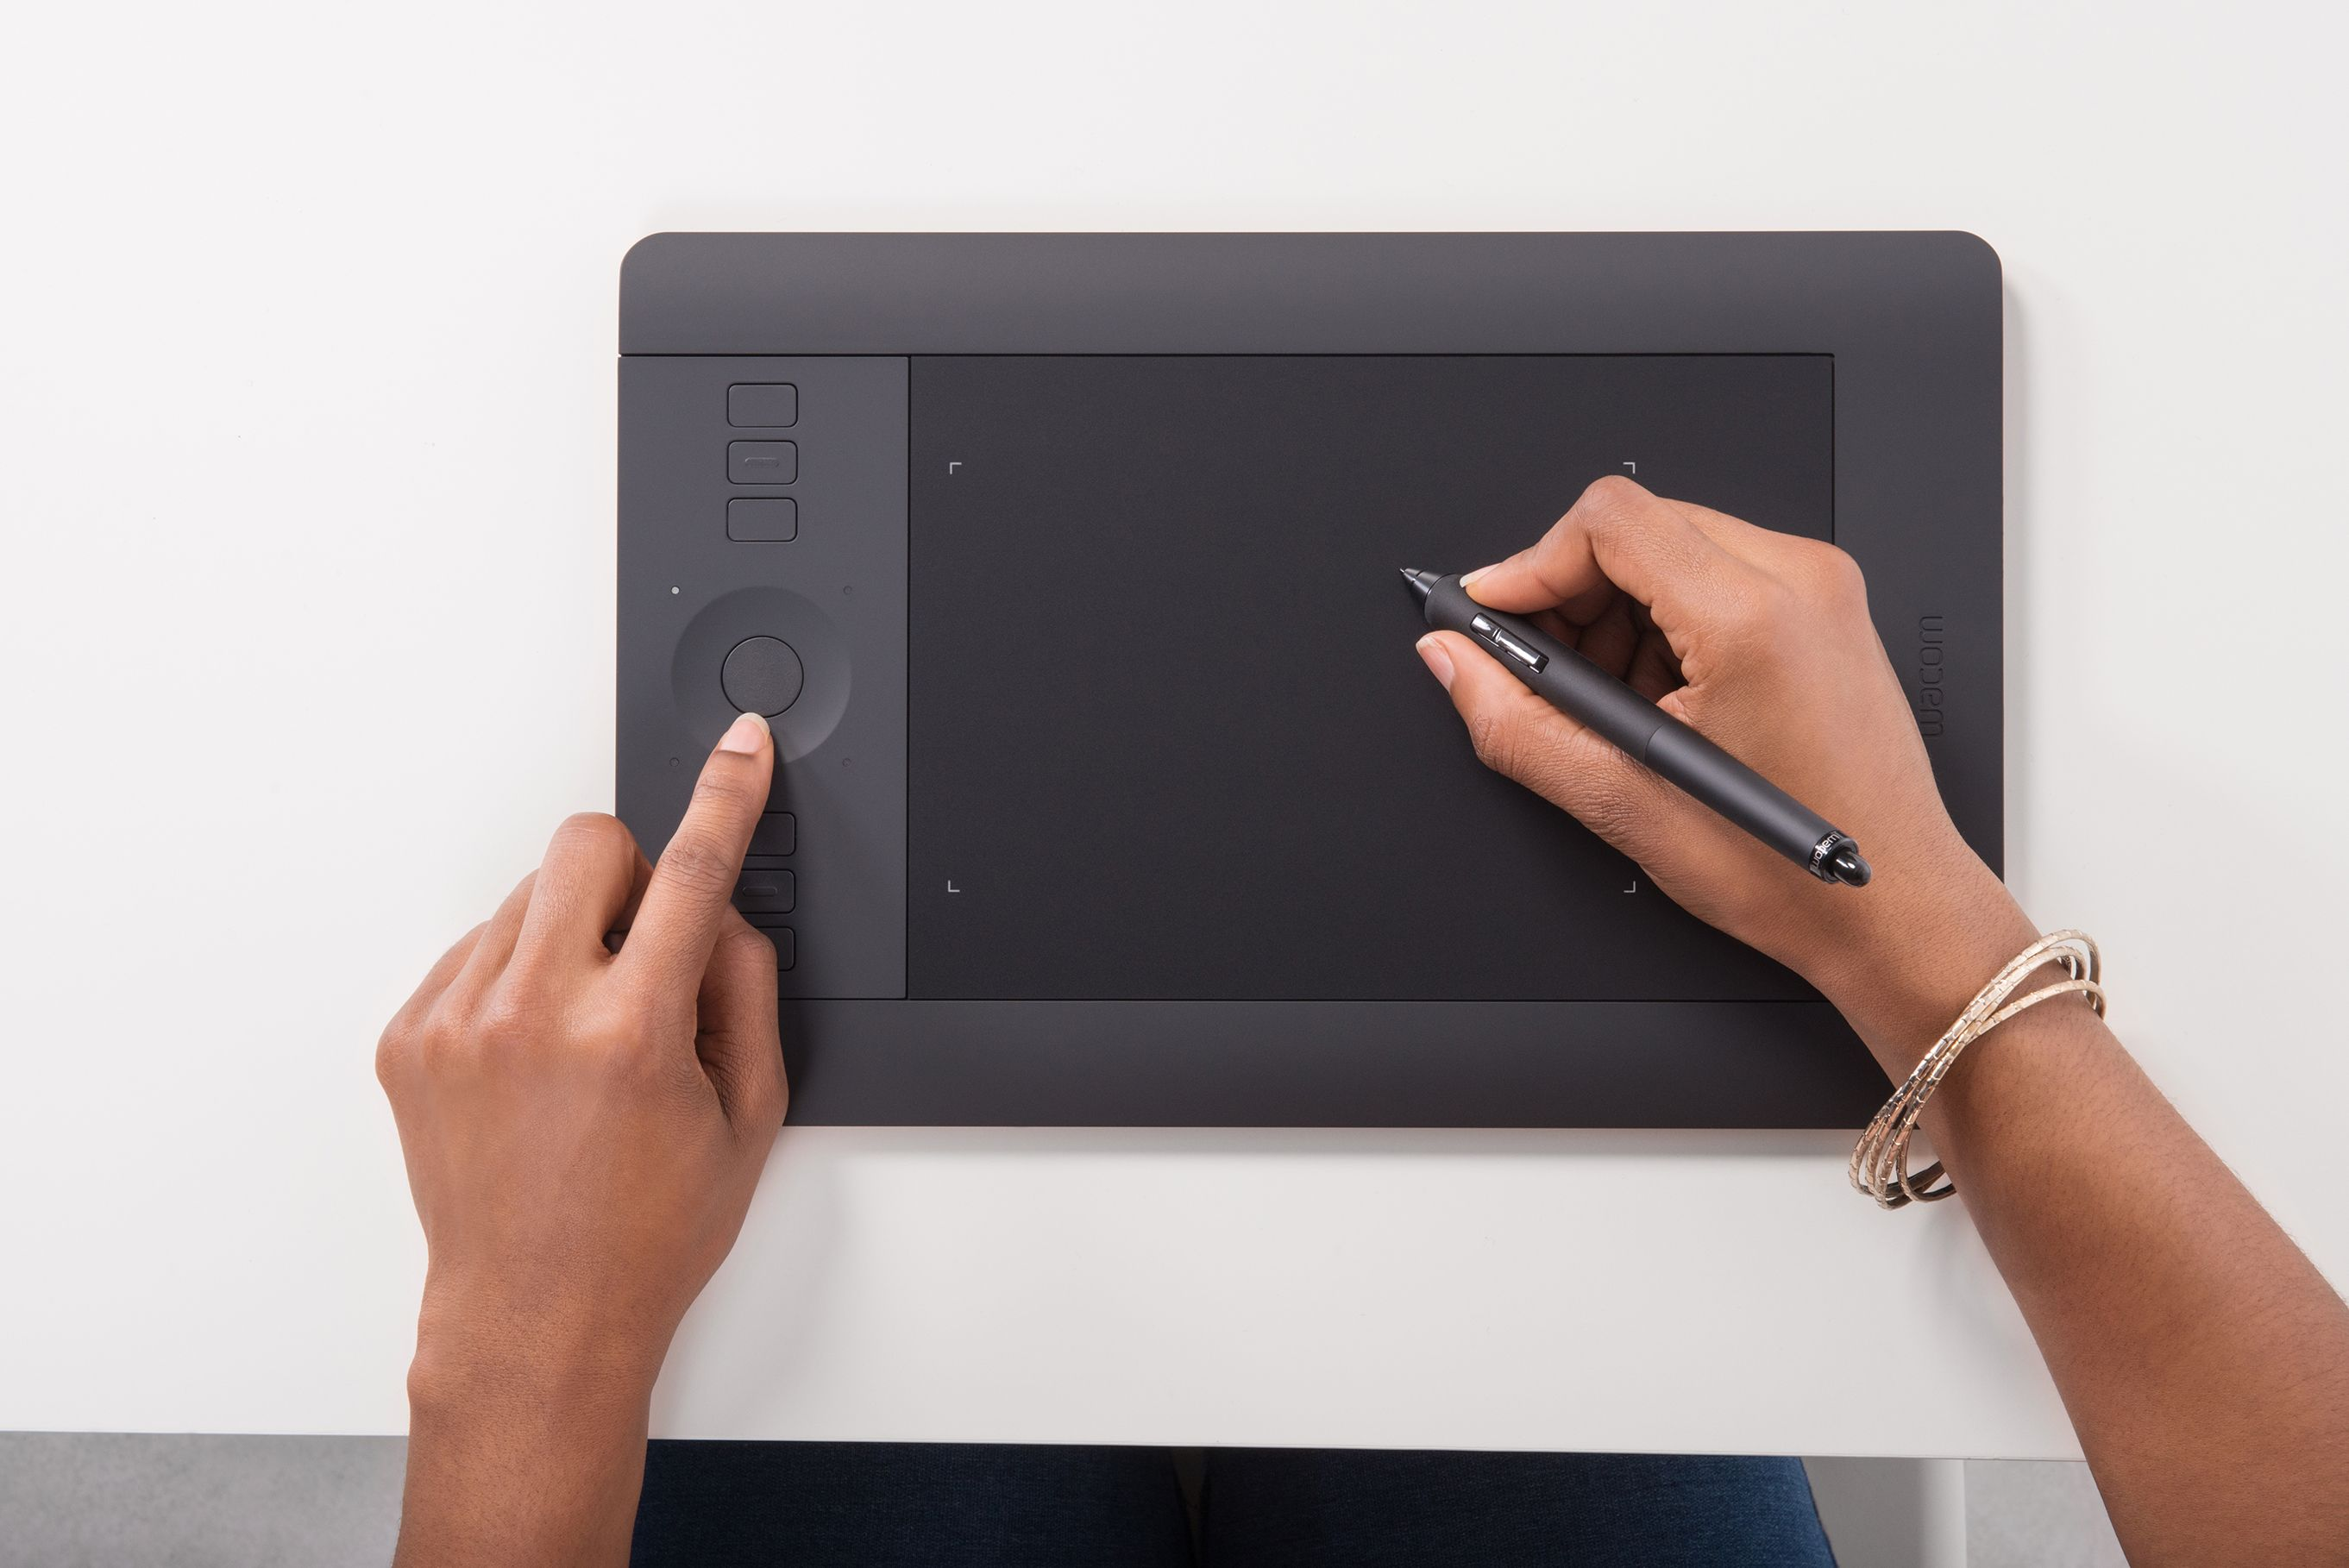 Wacom PTH451 Intuos Pro Pen and Touch Tablet, Small